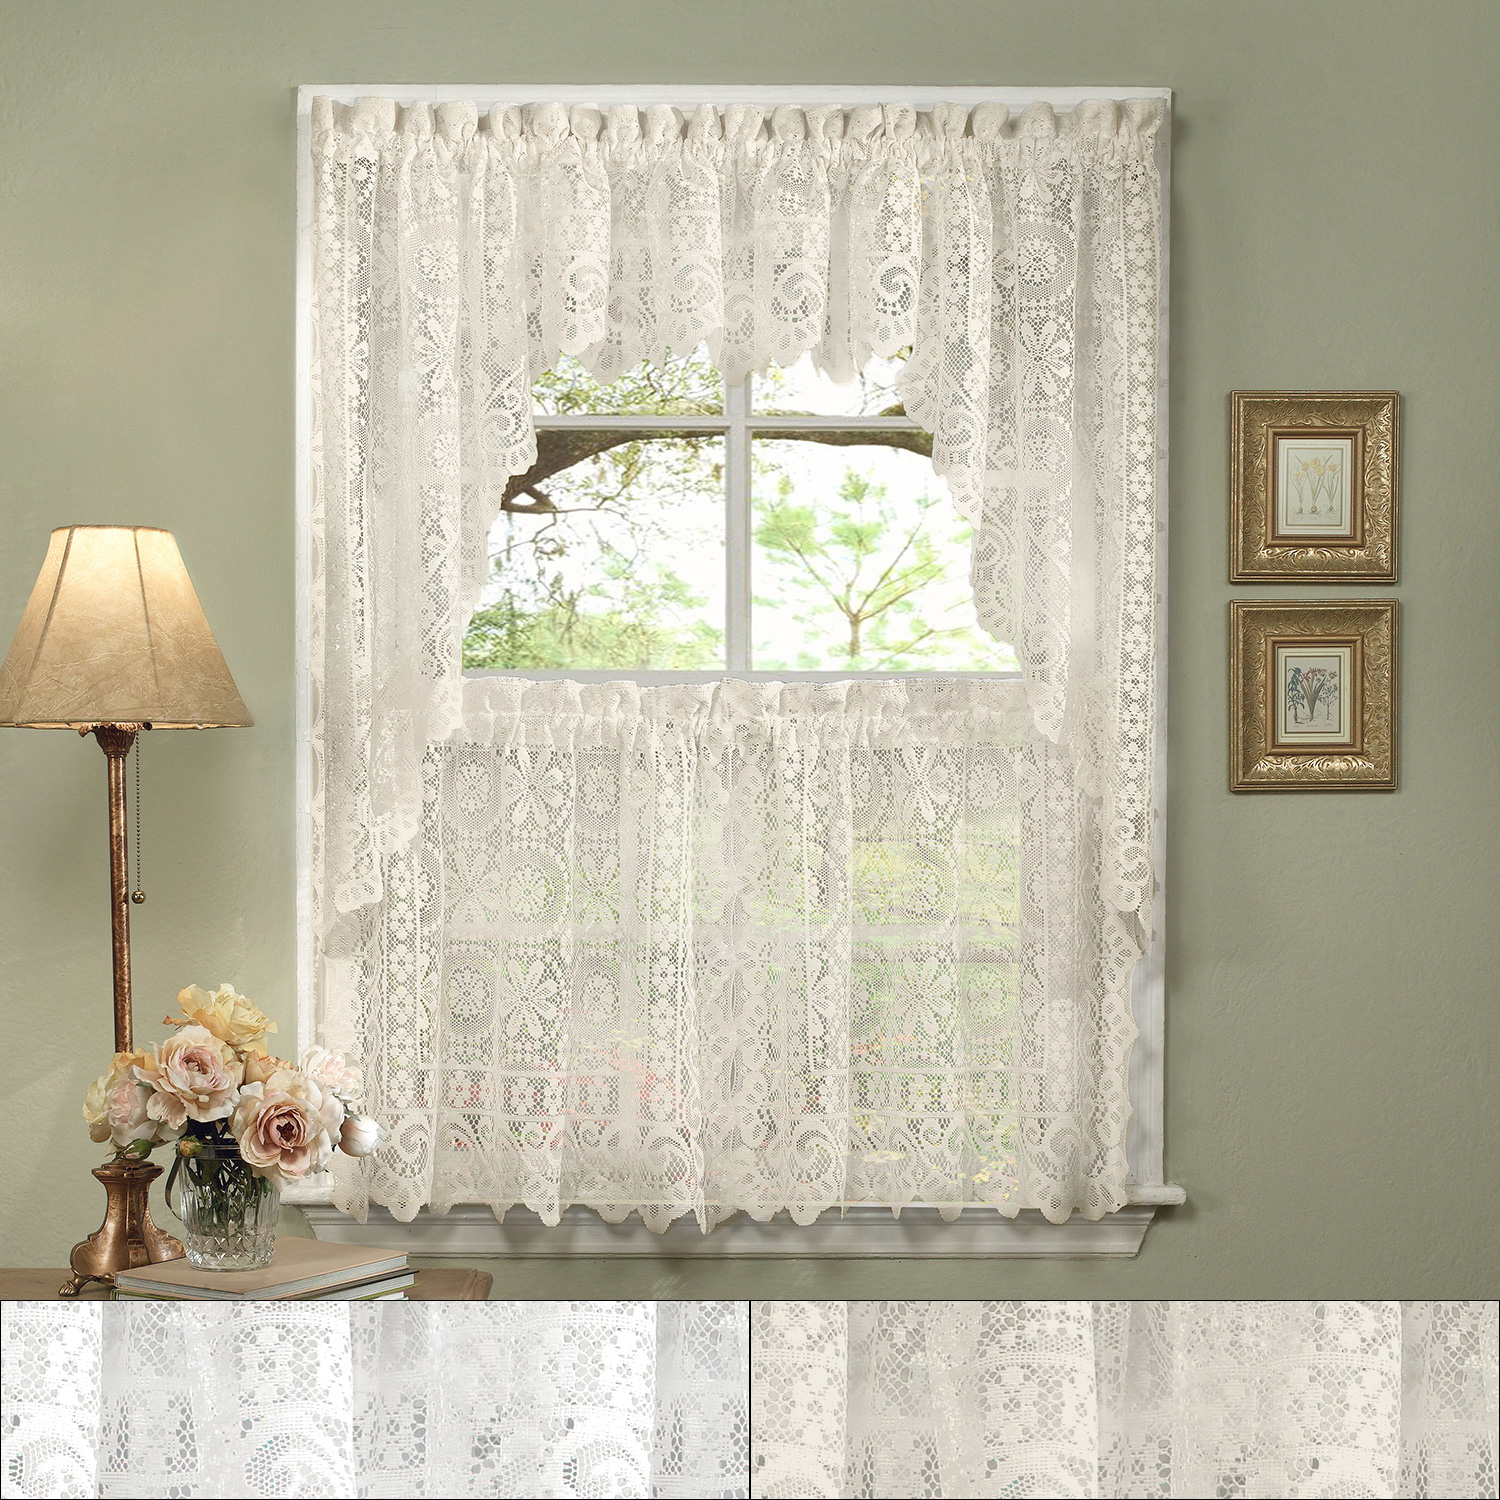 "Details About Hopewell Heavy Lace Floral Kitchen Curtain 24"" Tier Pair, Valance & Swag Set Regarding Cotton Lace 5 Piece Window Tier And Swag Sets (View 2 of 20)"